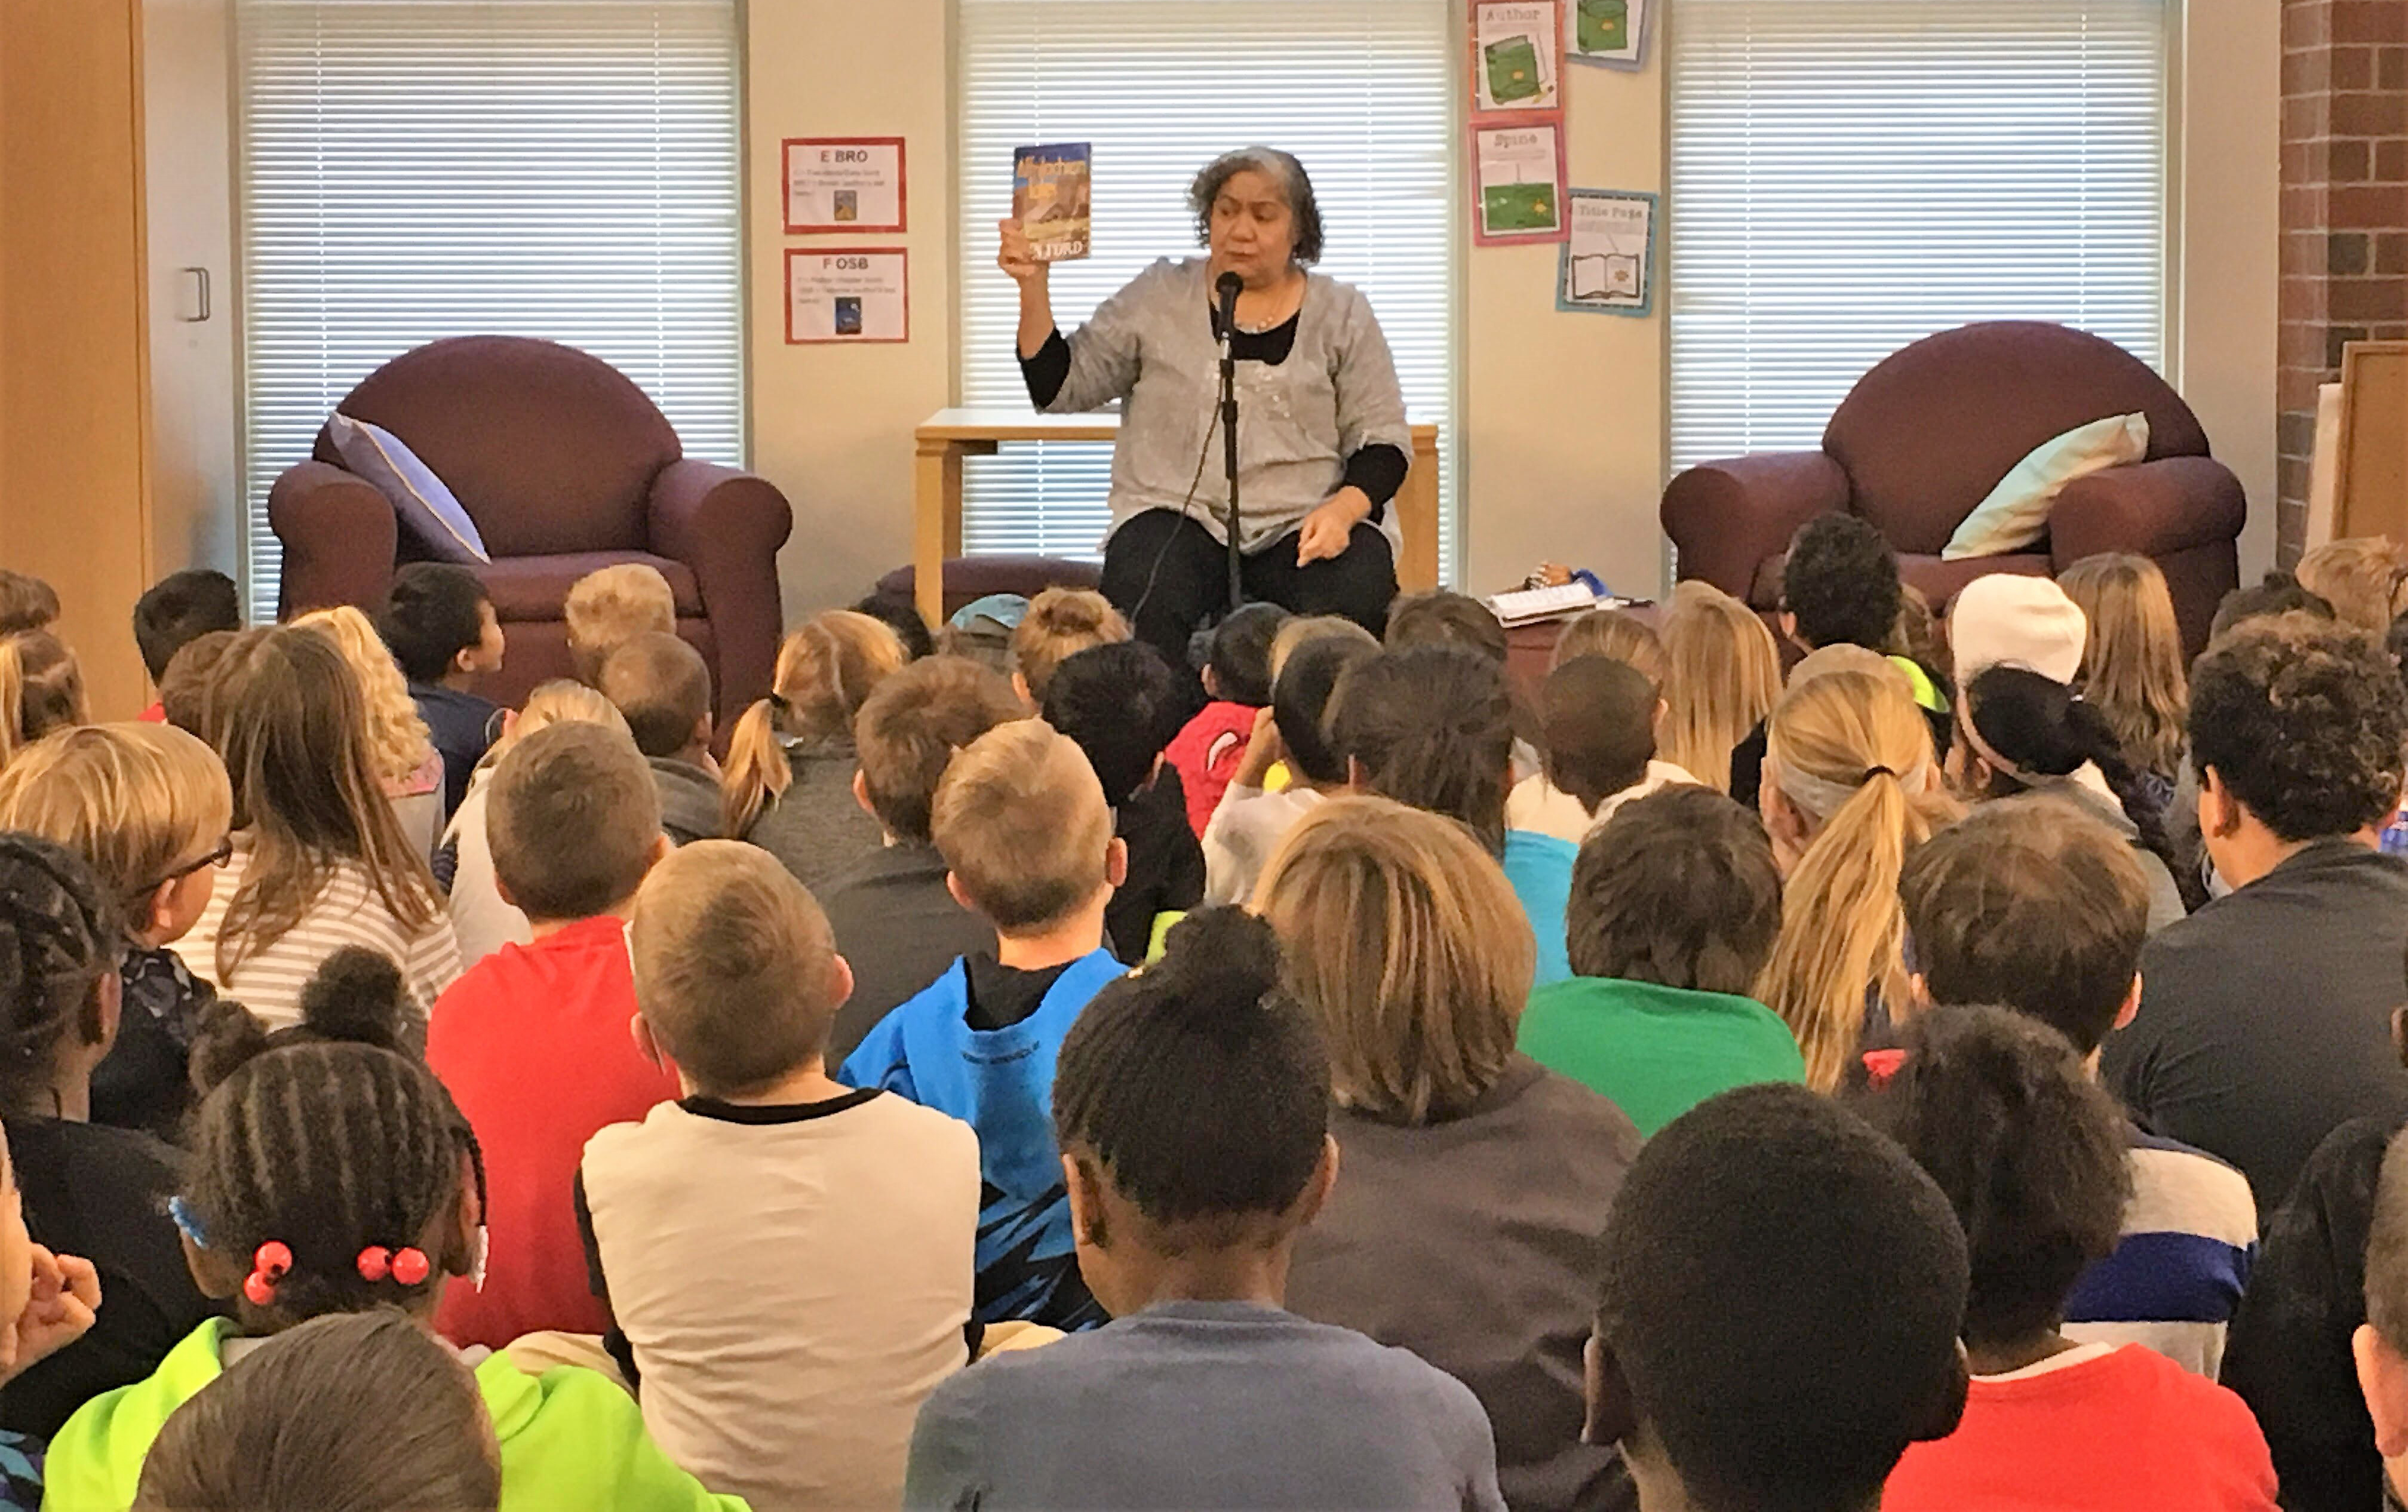 Lyn Ford captivated Fouse students with her storytelling